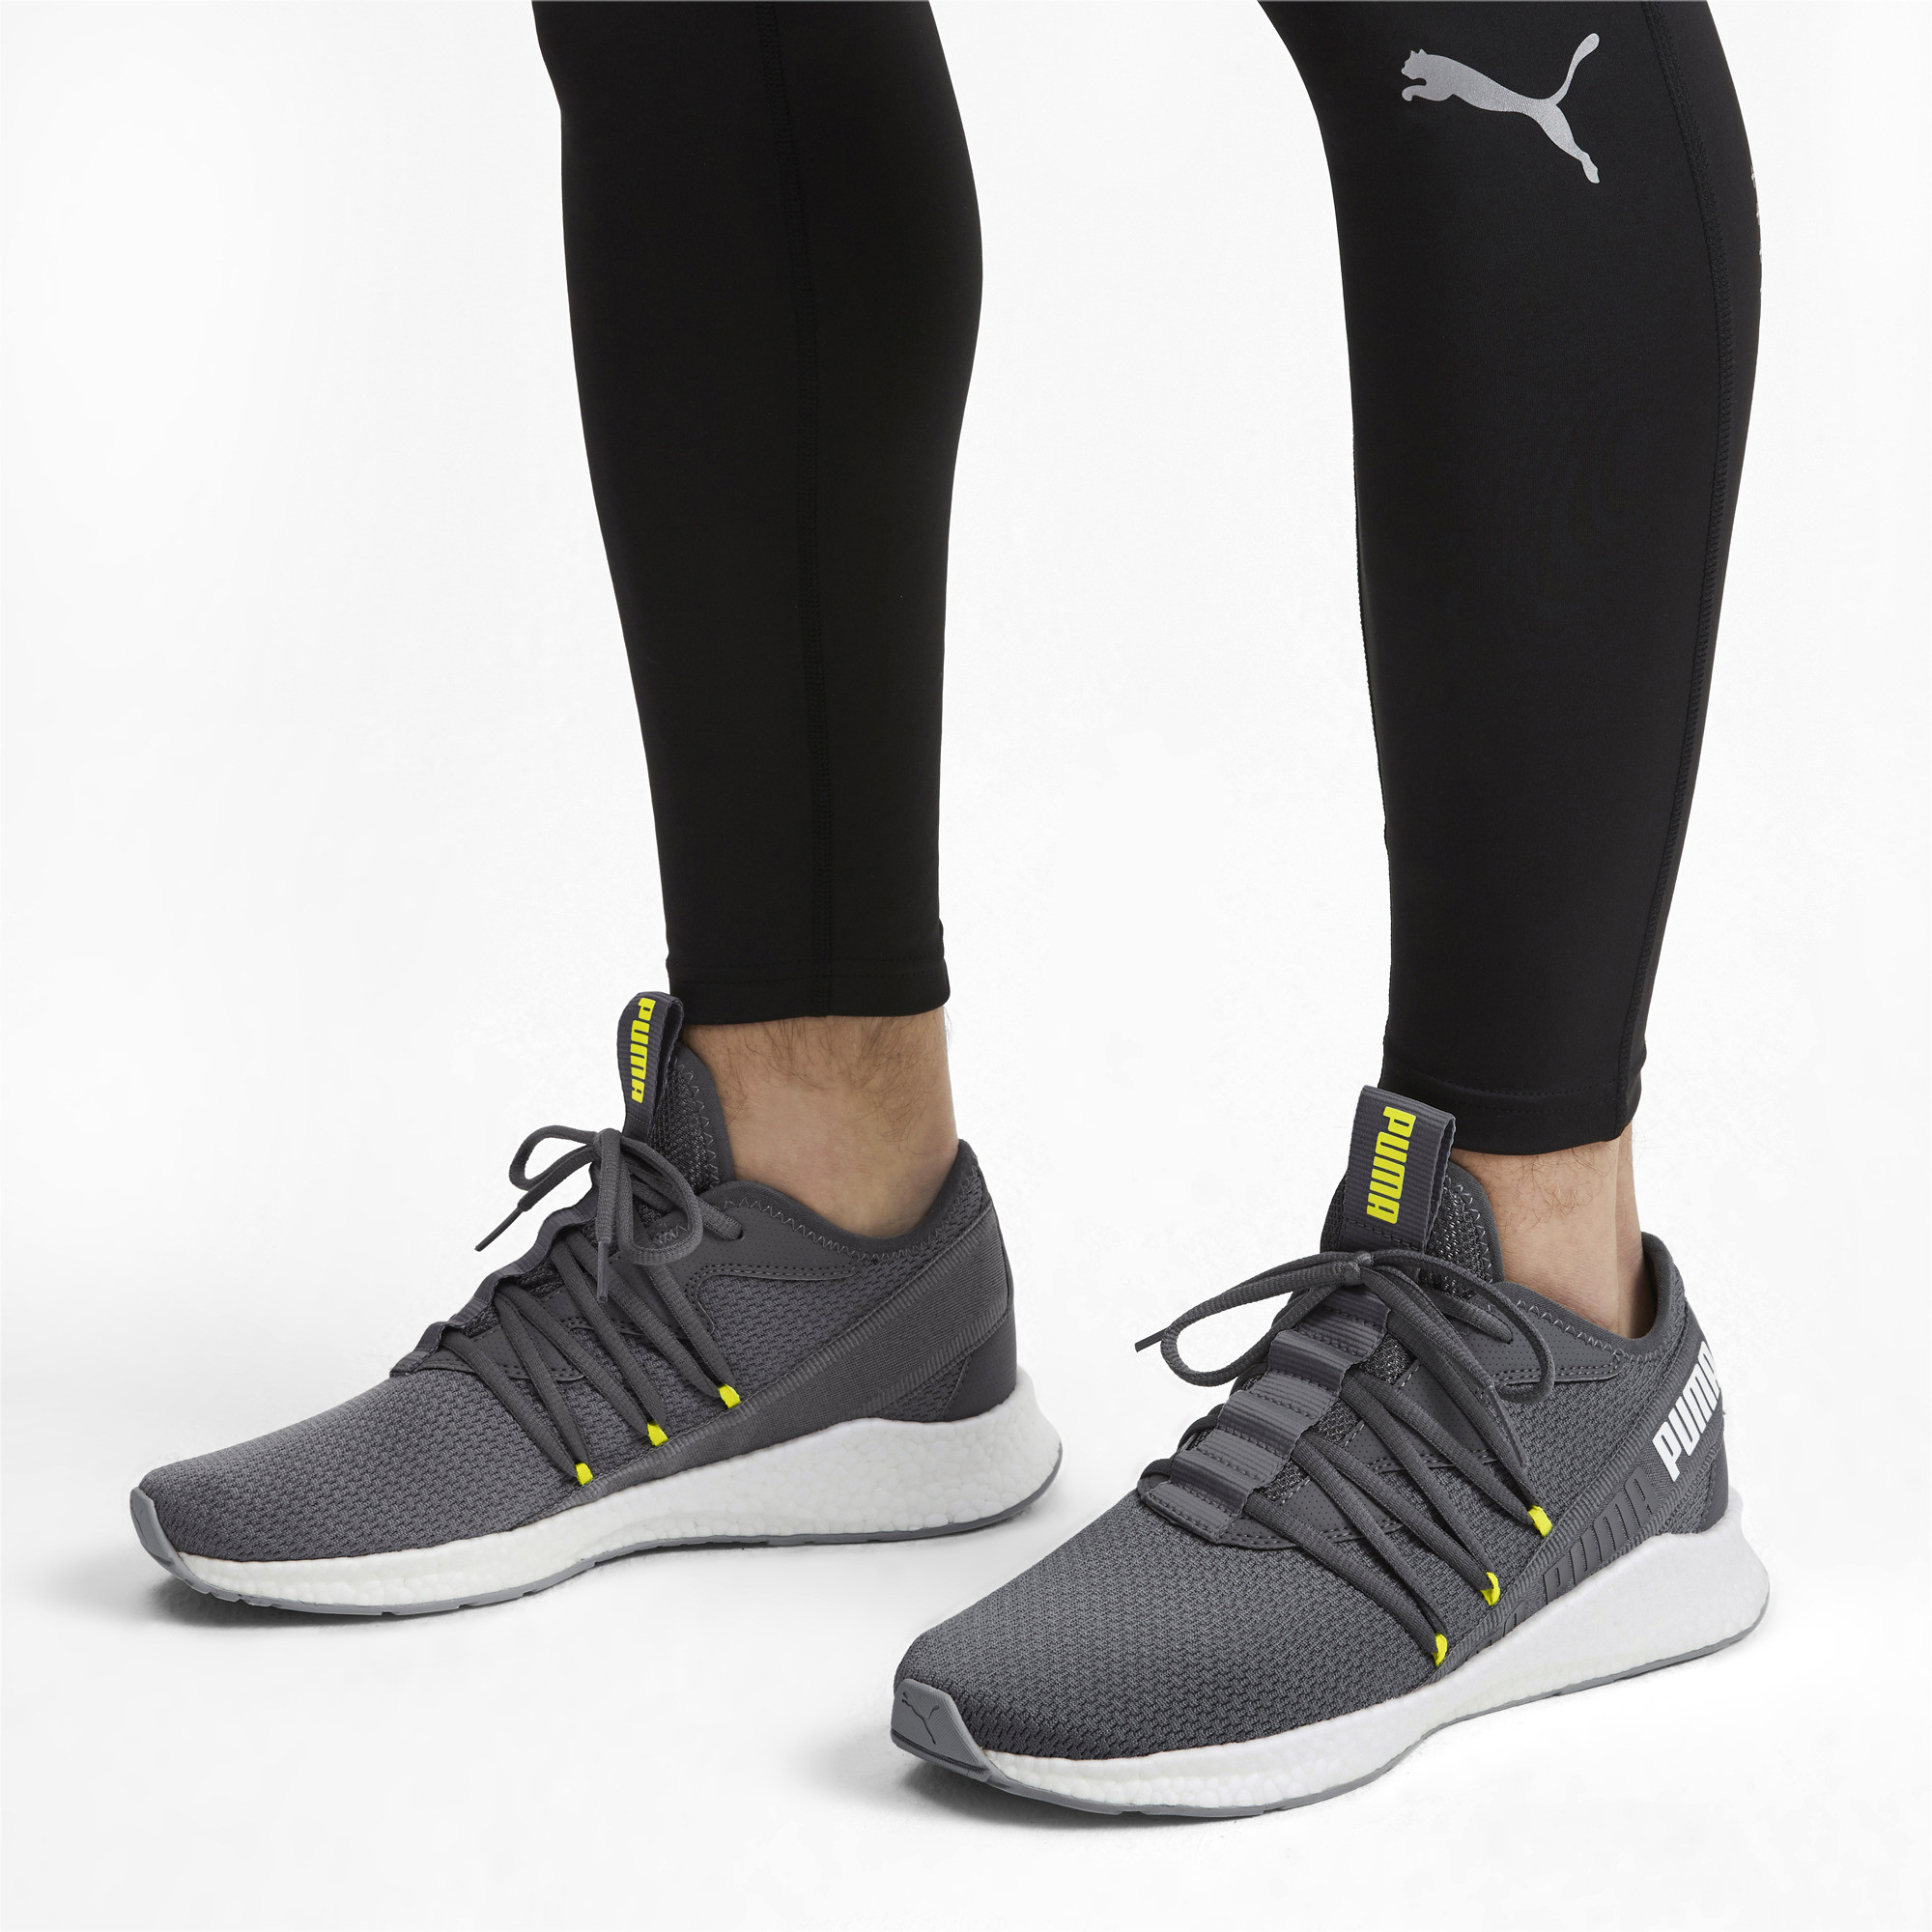 Details about PUMA Men's NRGY Star Running Shoes